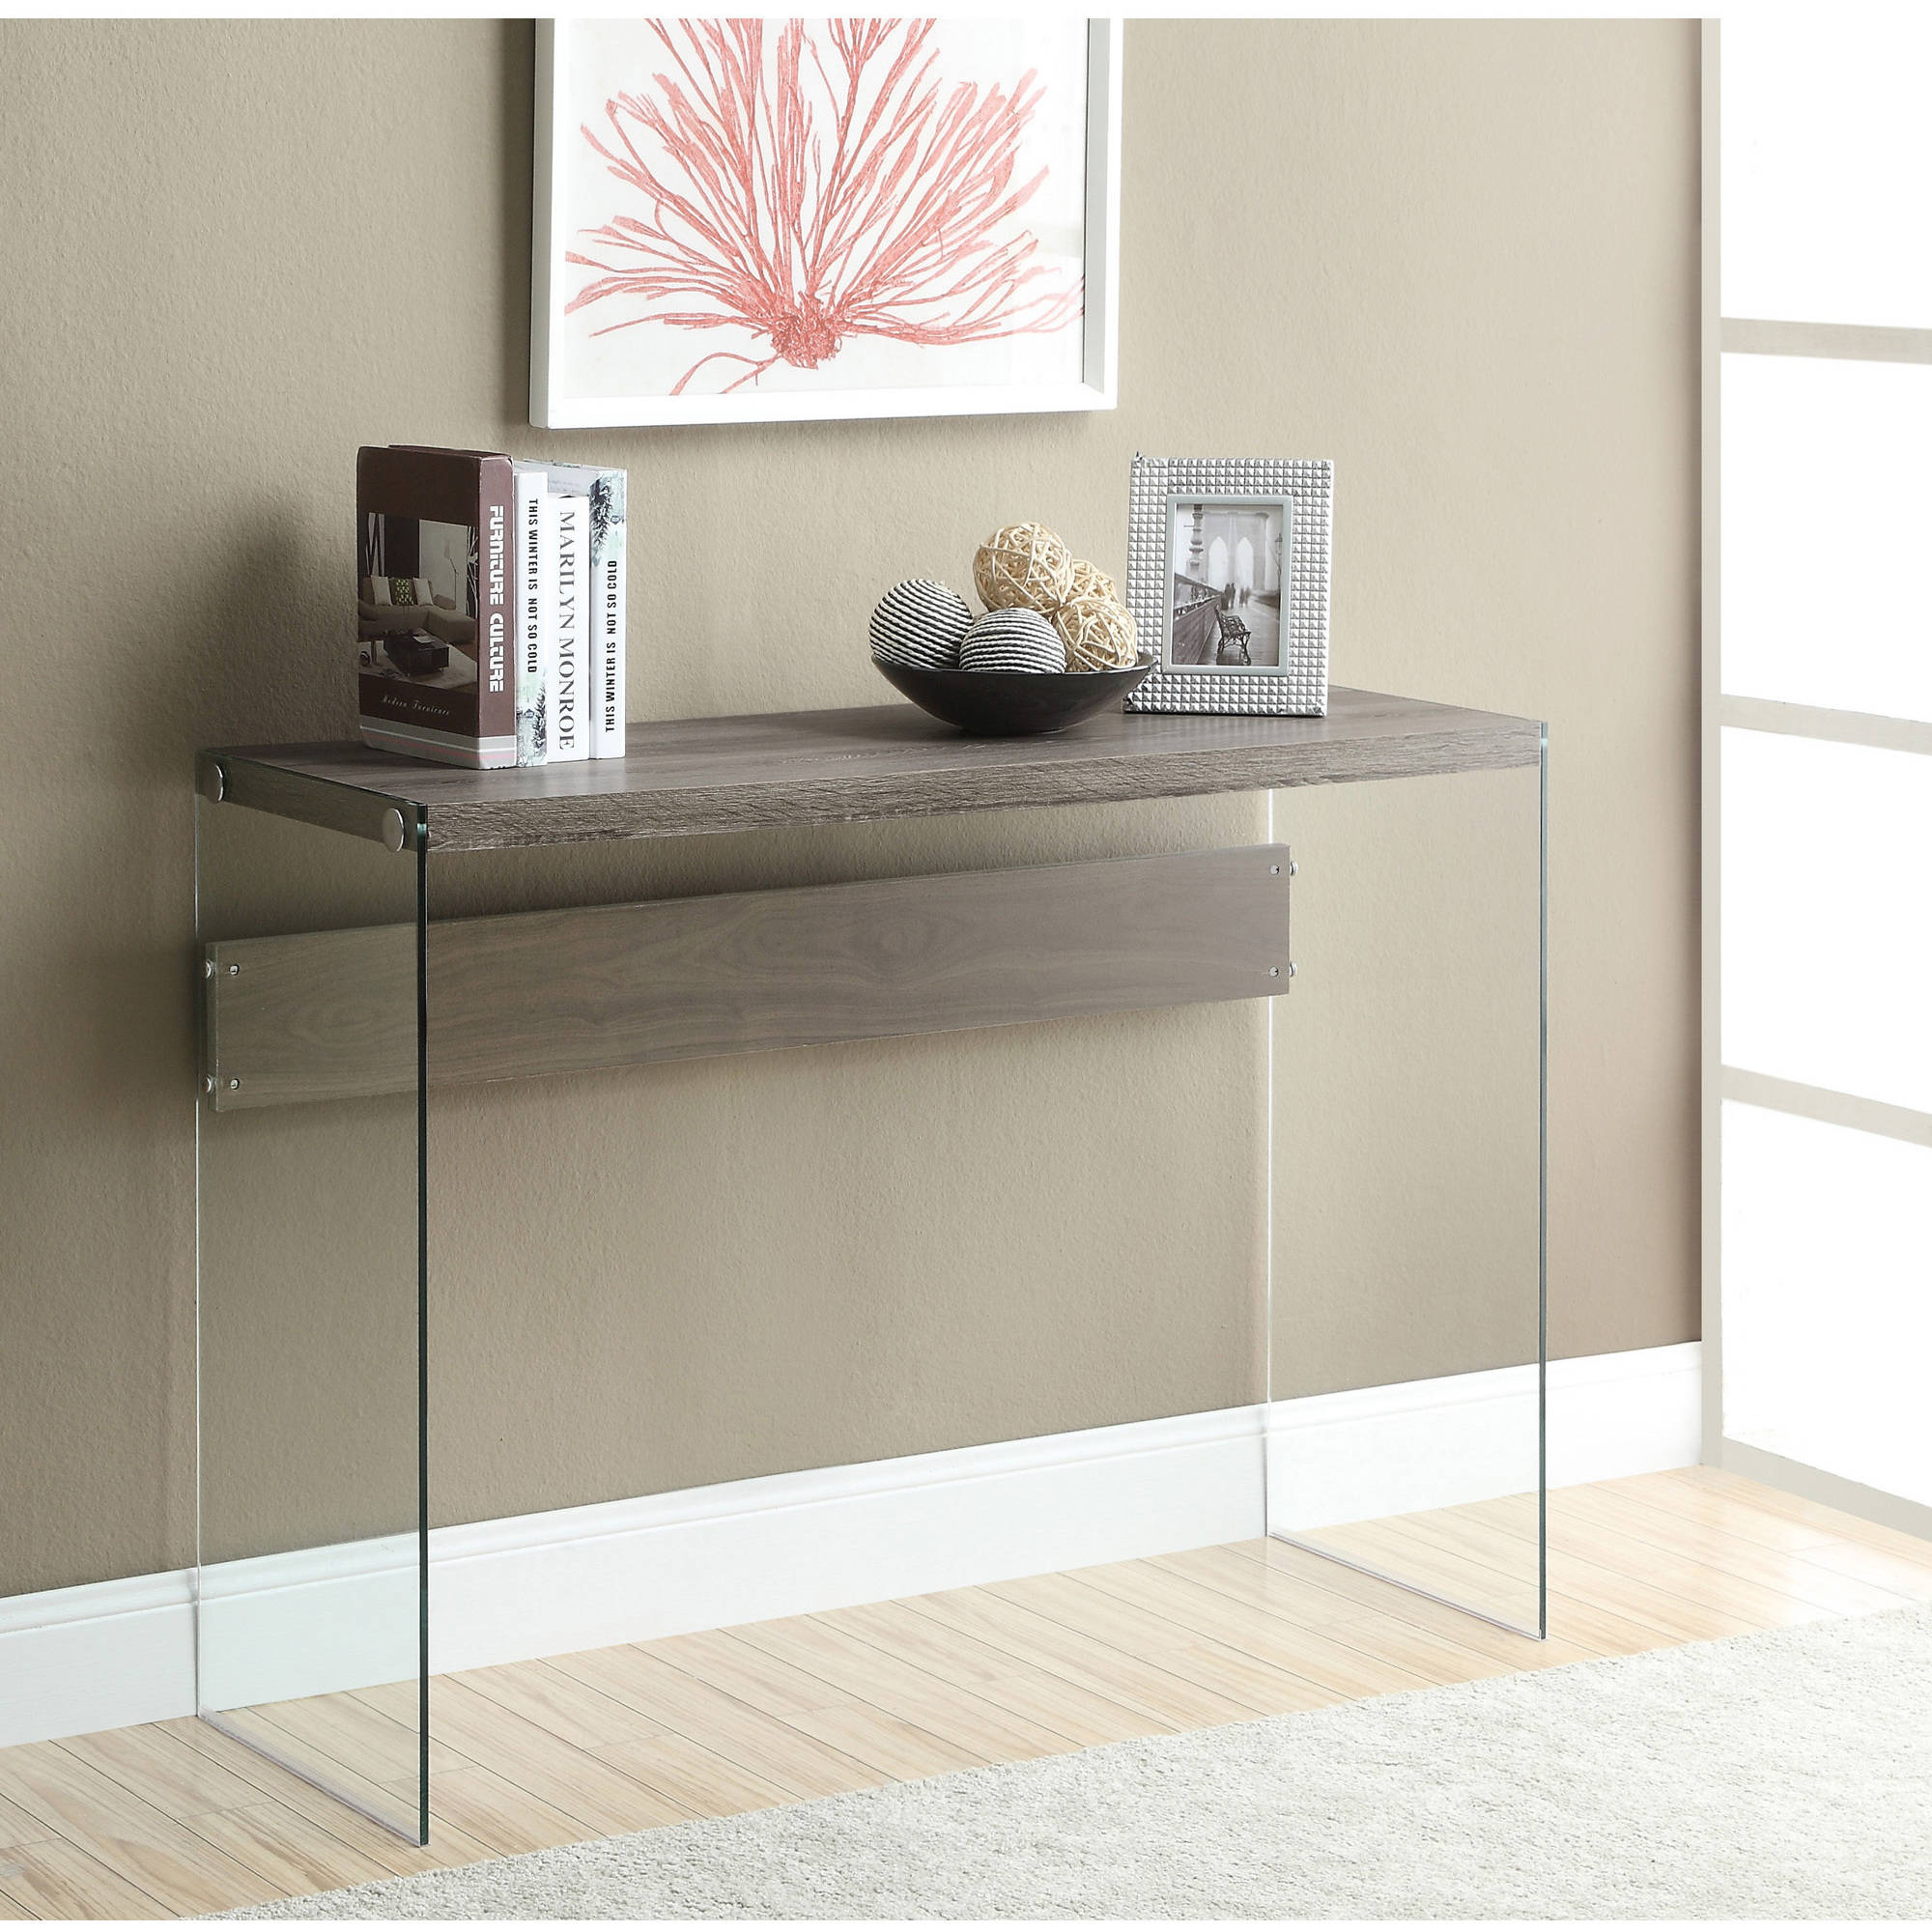 Ordinaire Monarch Console Table Dark Taupe With Tempered Glass